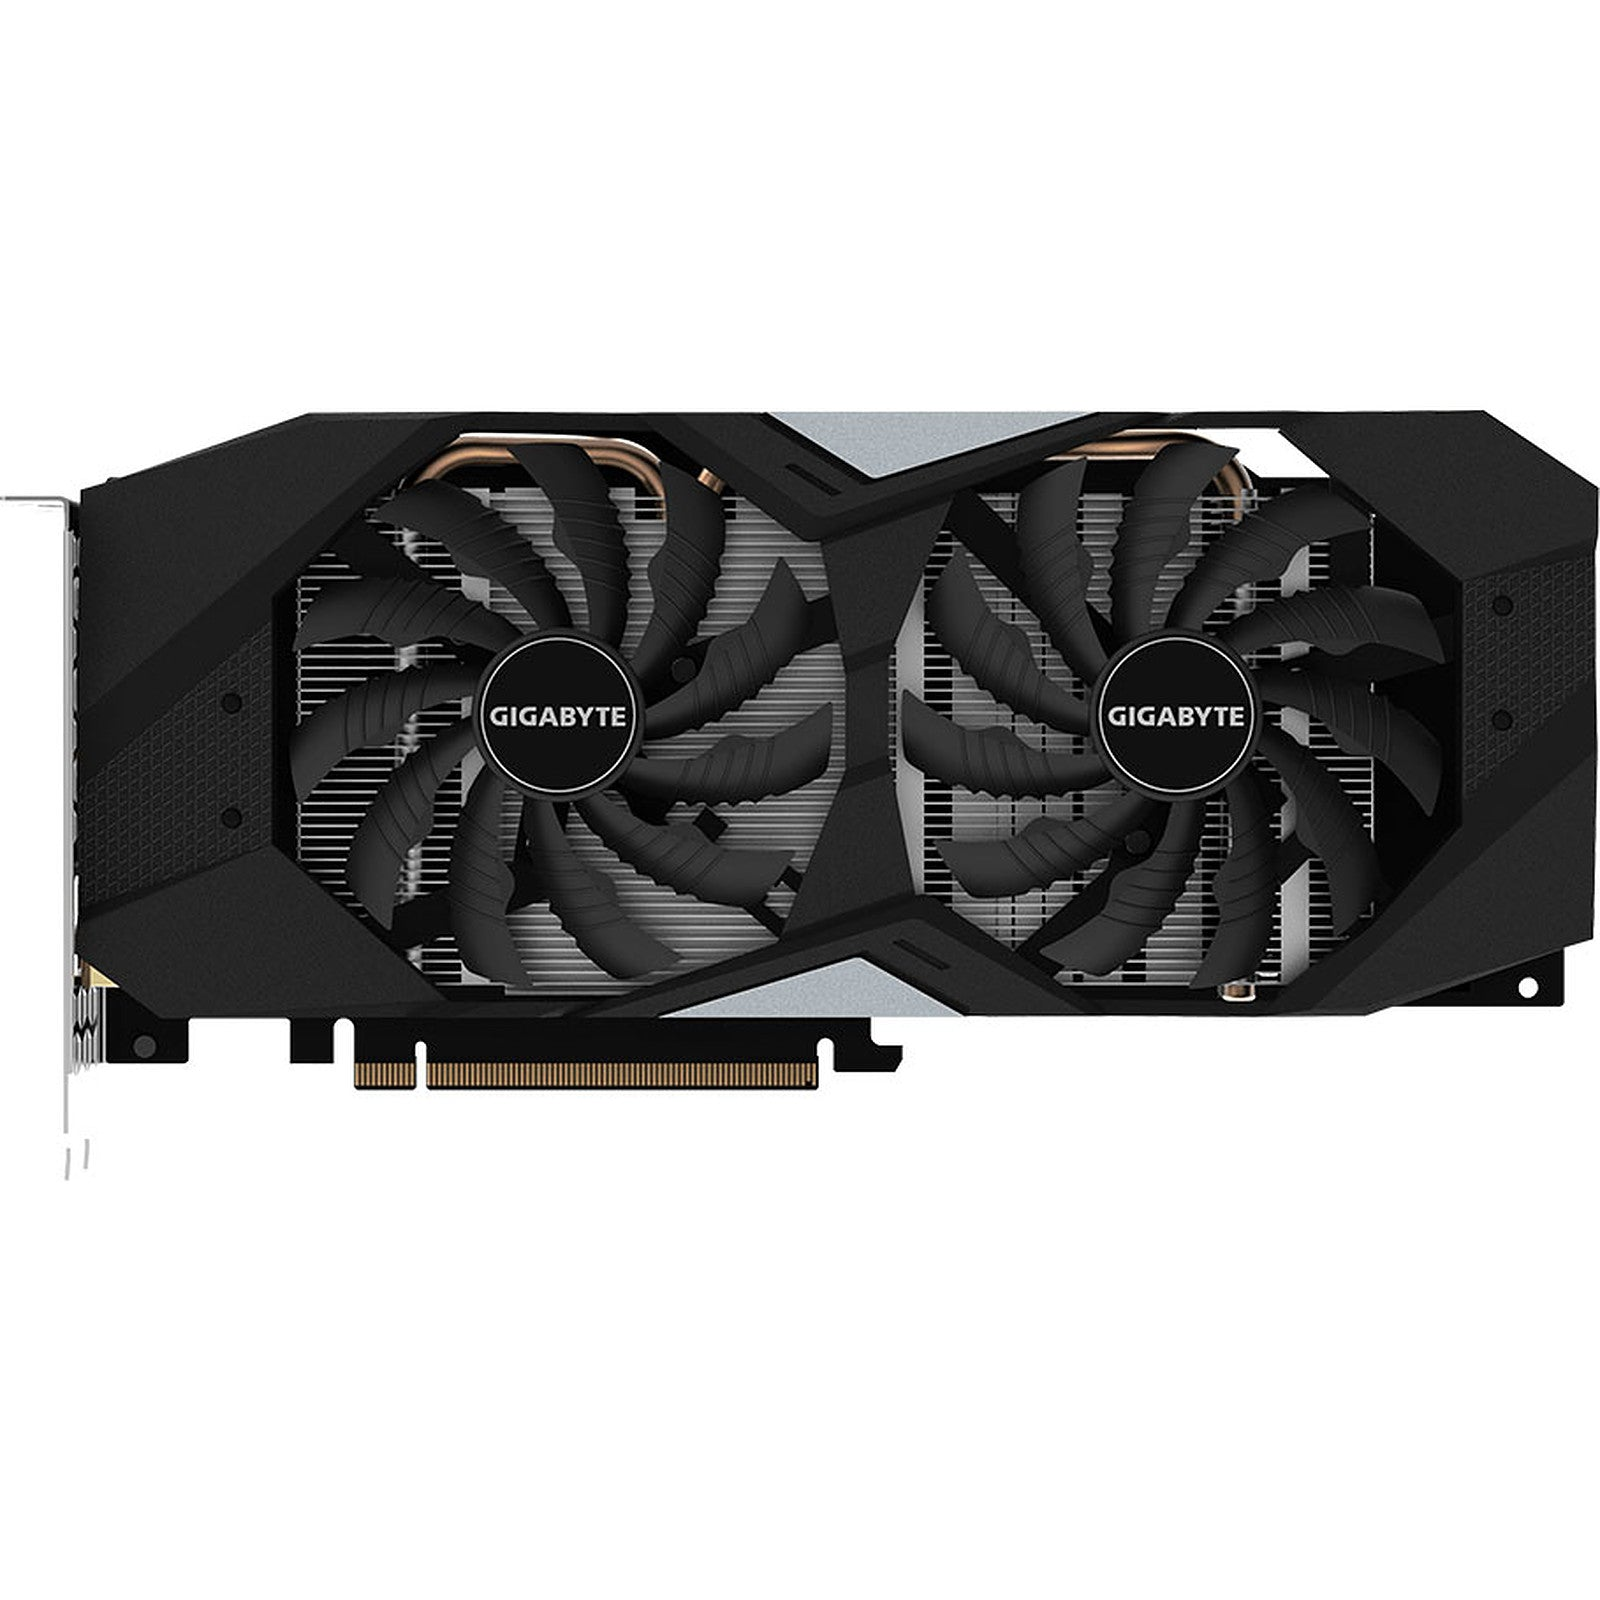 Gigabyte GeForce RTX 2060 WindForce 6G - GDDR6 - HDMI/Tri DisplayPort - PCI Express (NVIDIA GeForce RTX 2060)